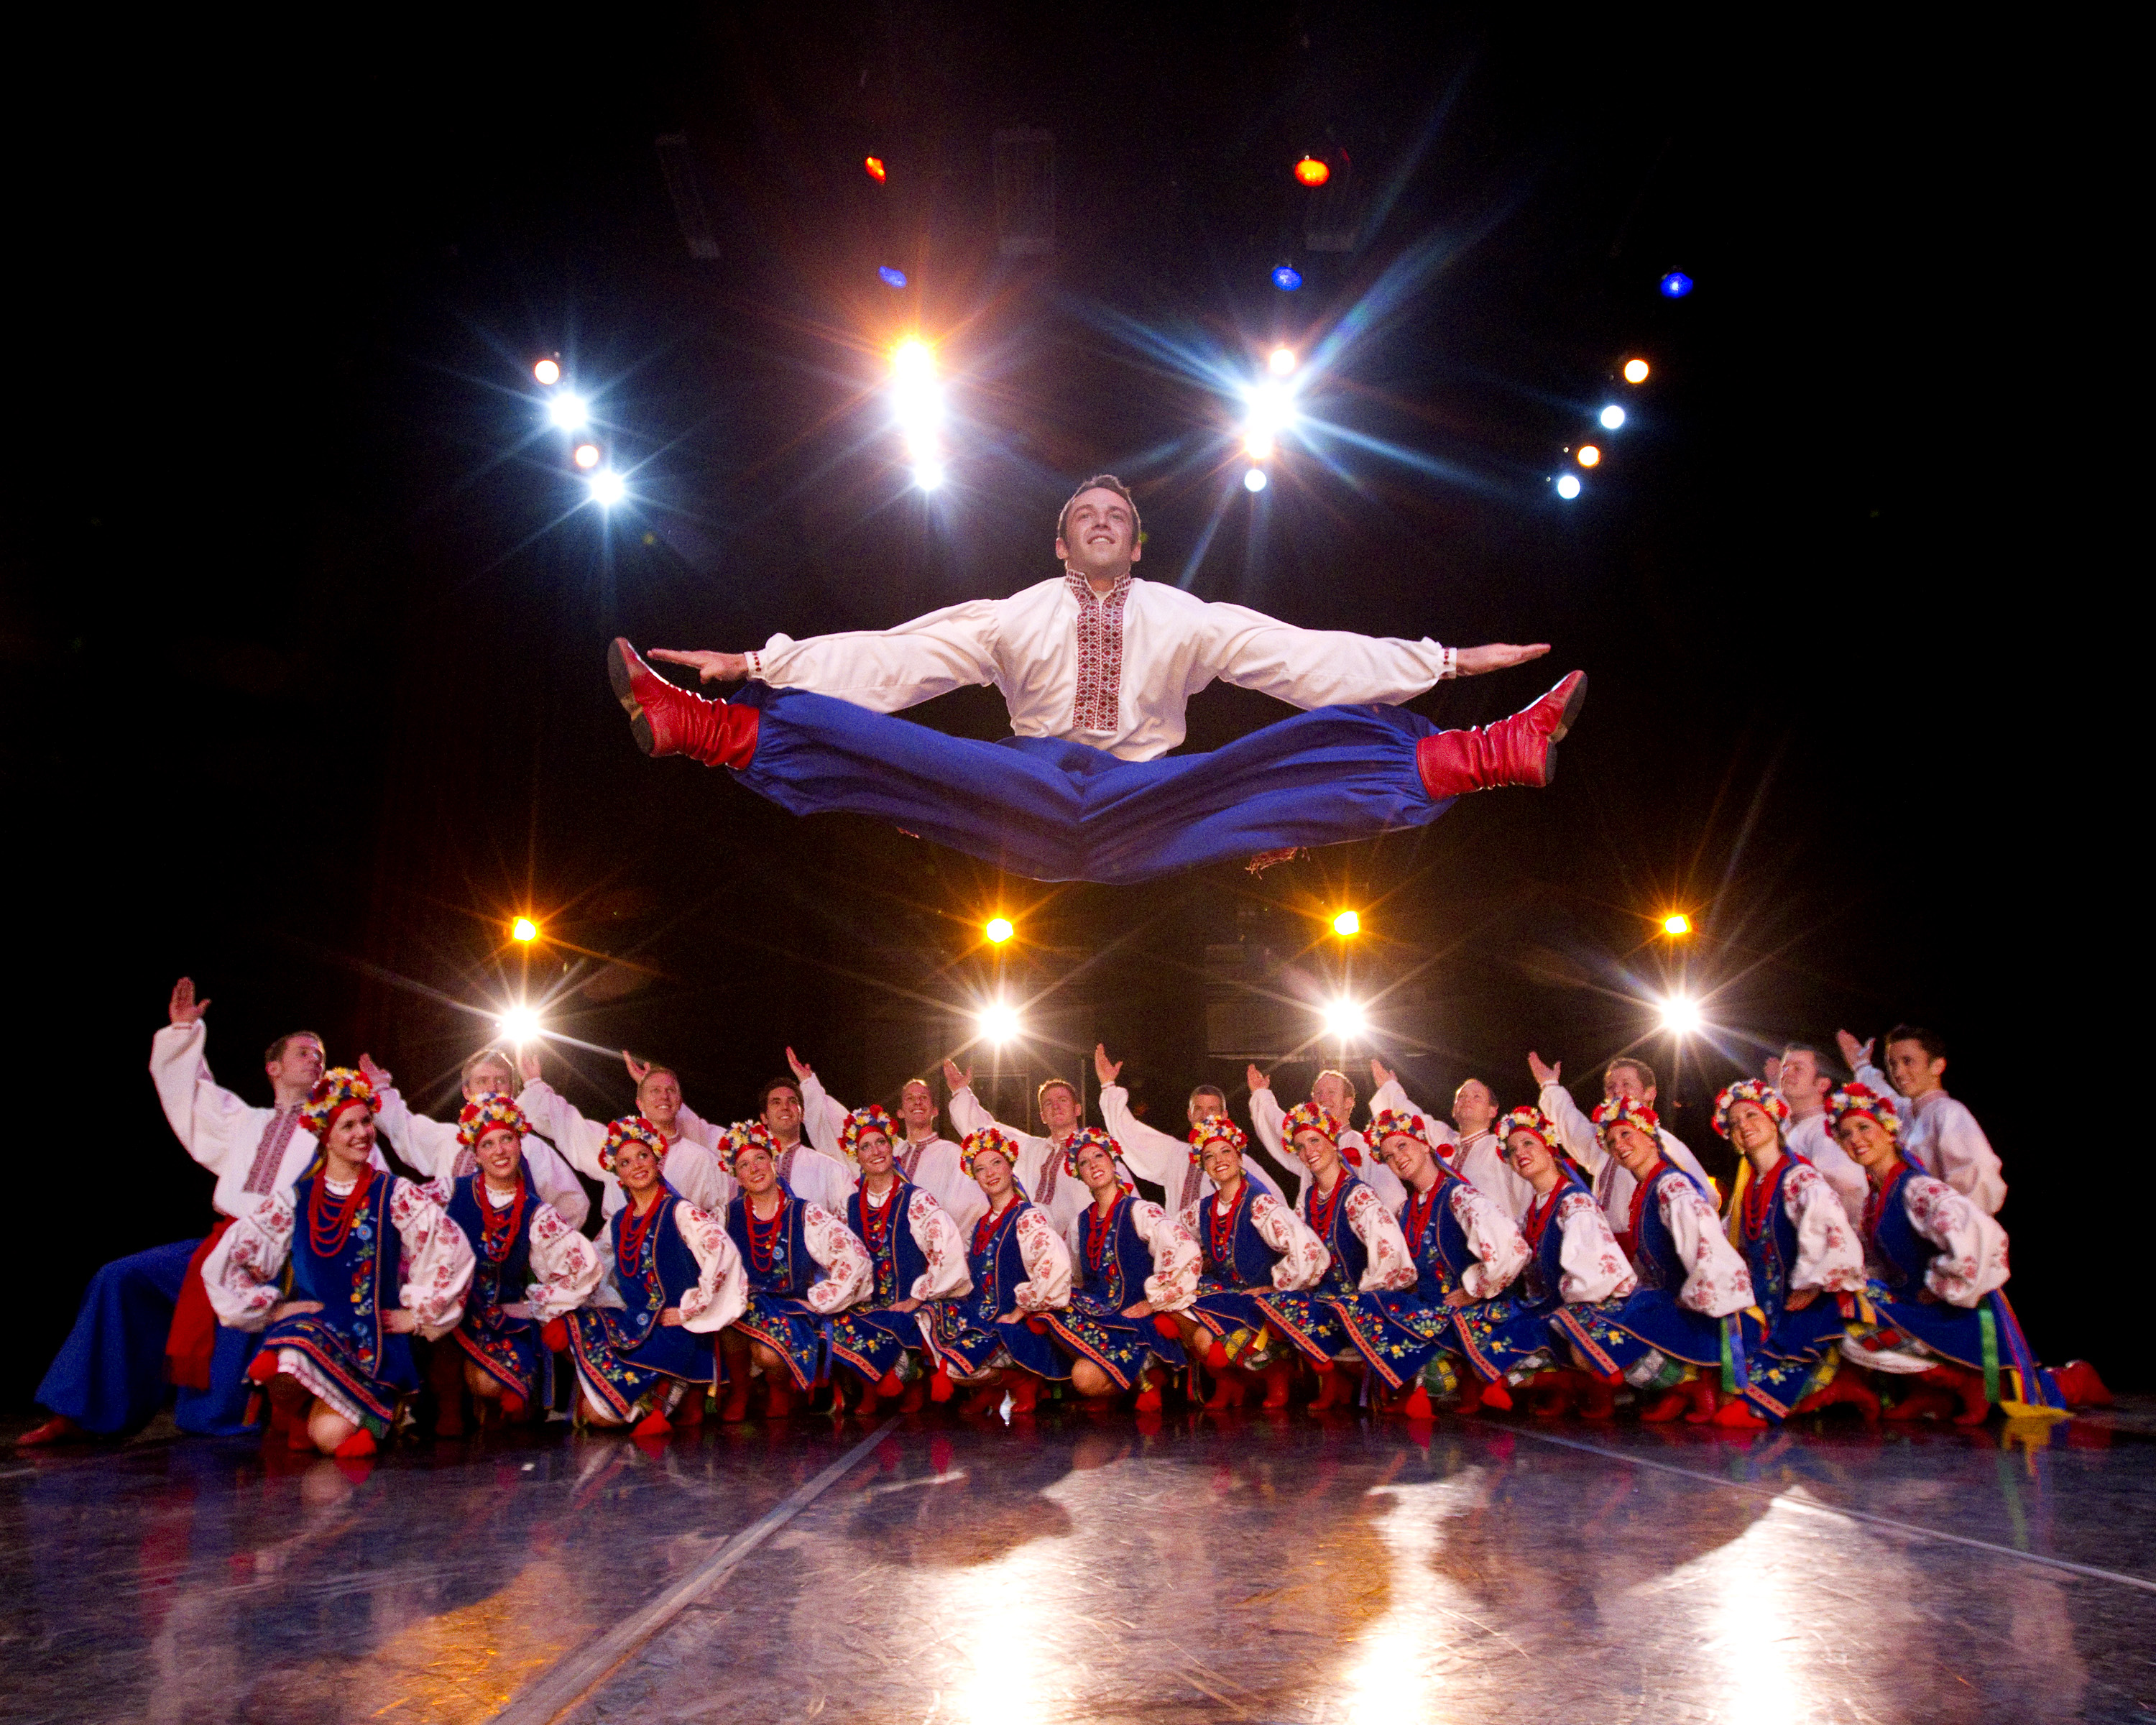 BYU dance department presents 'Christmas around the World' - The ...